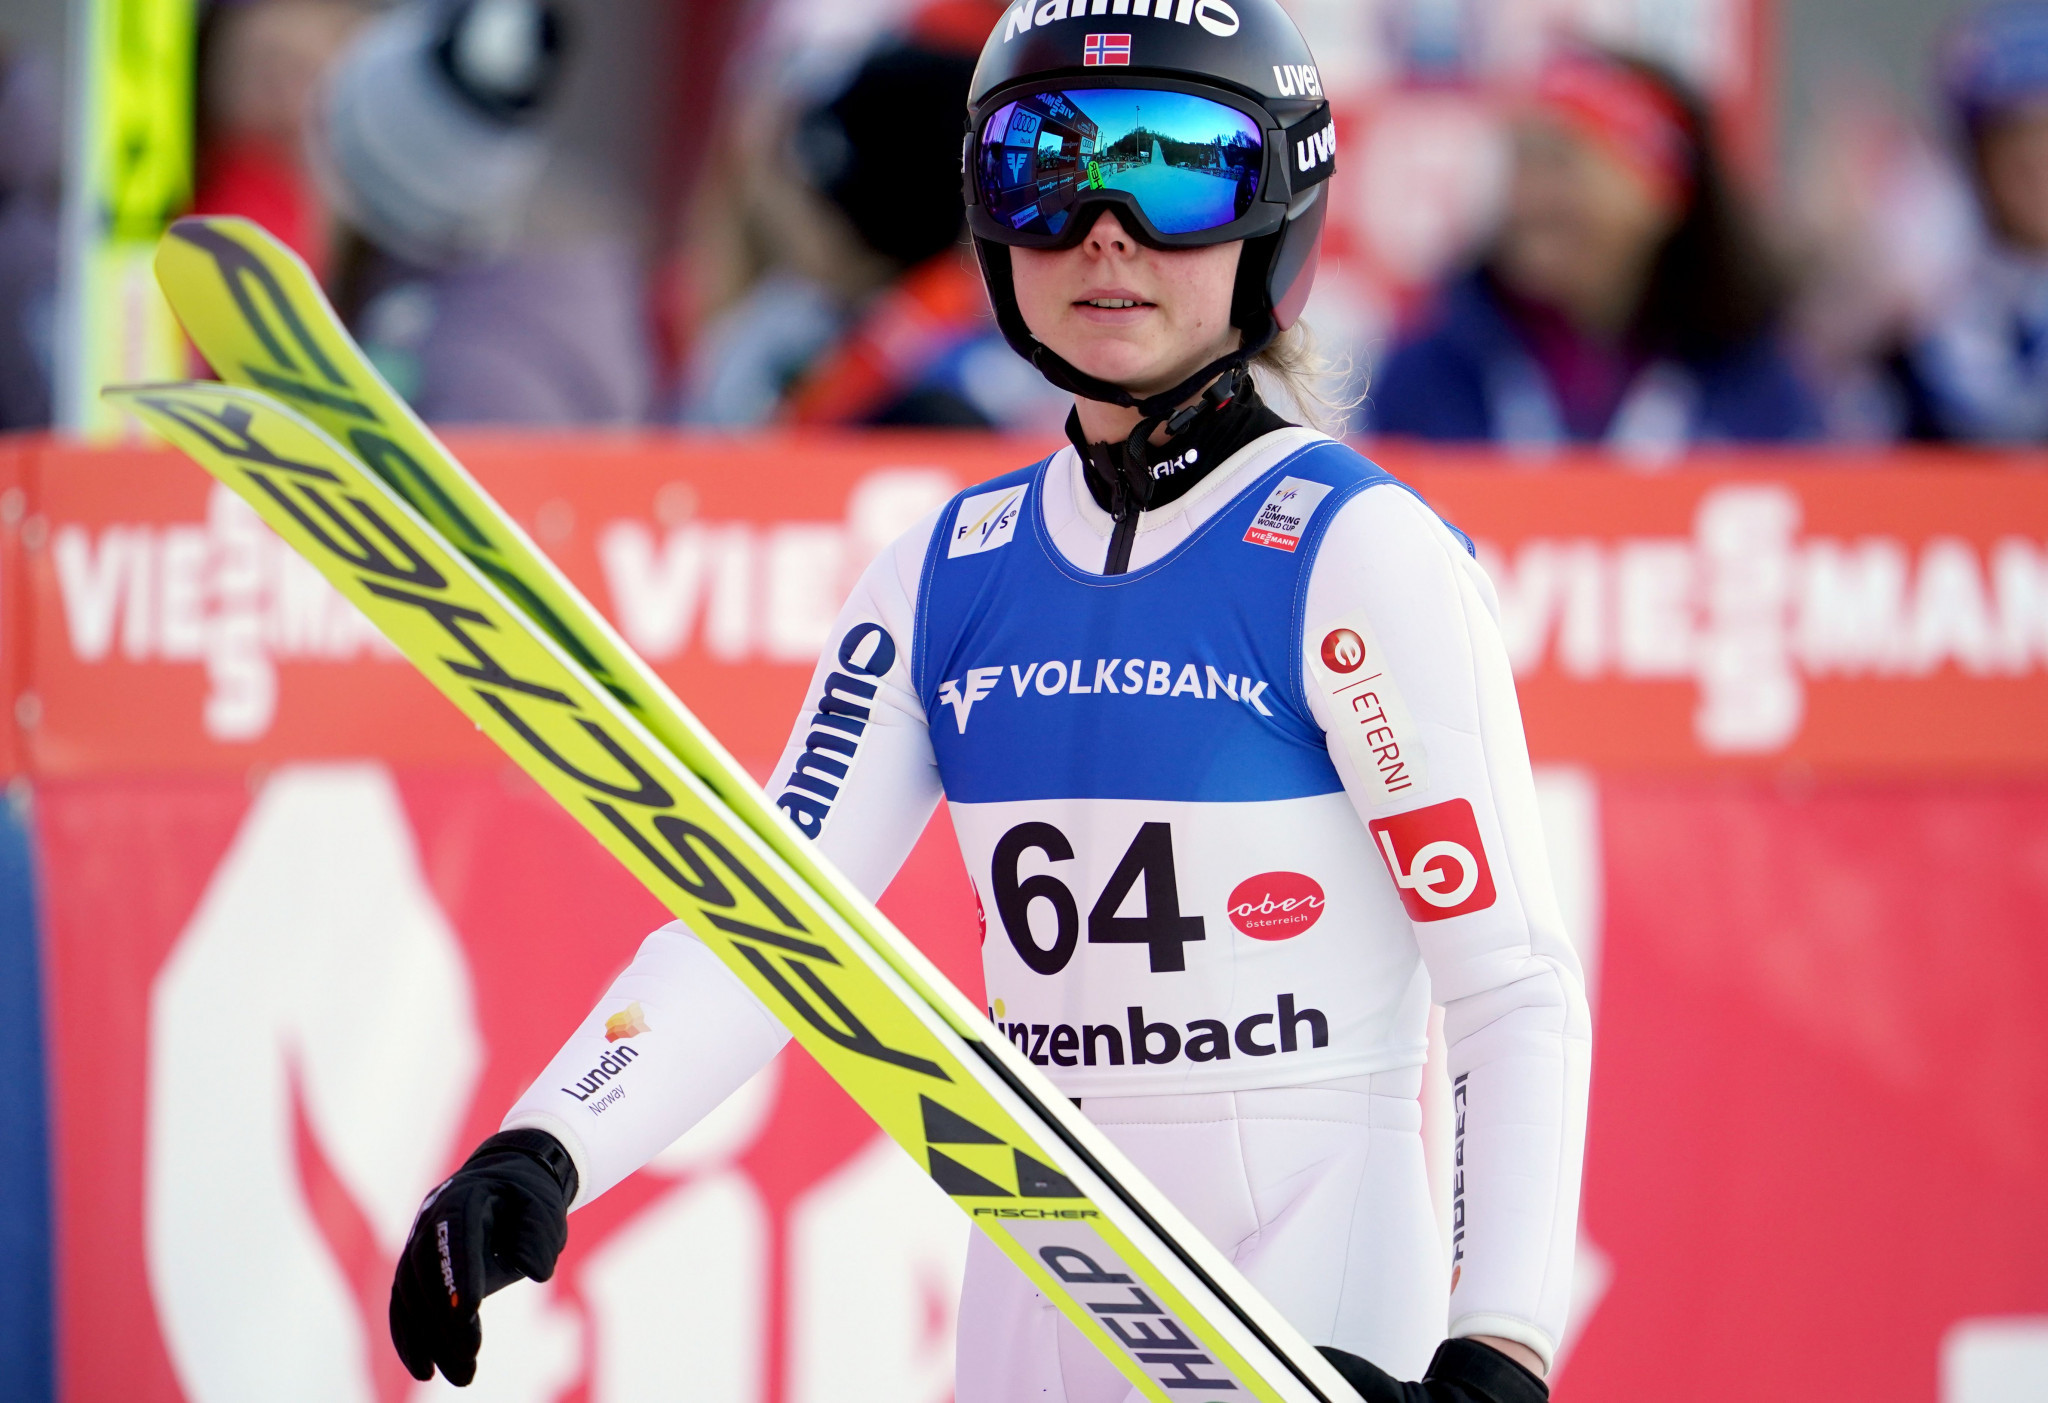 Lundby heads Norwegian ski jumping team for upcoming season